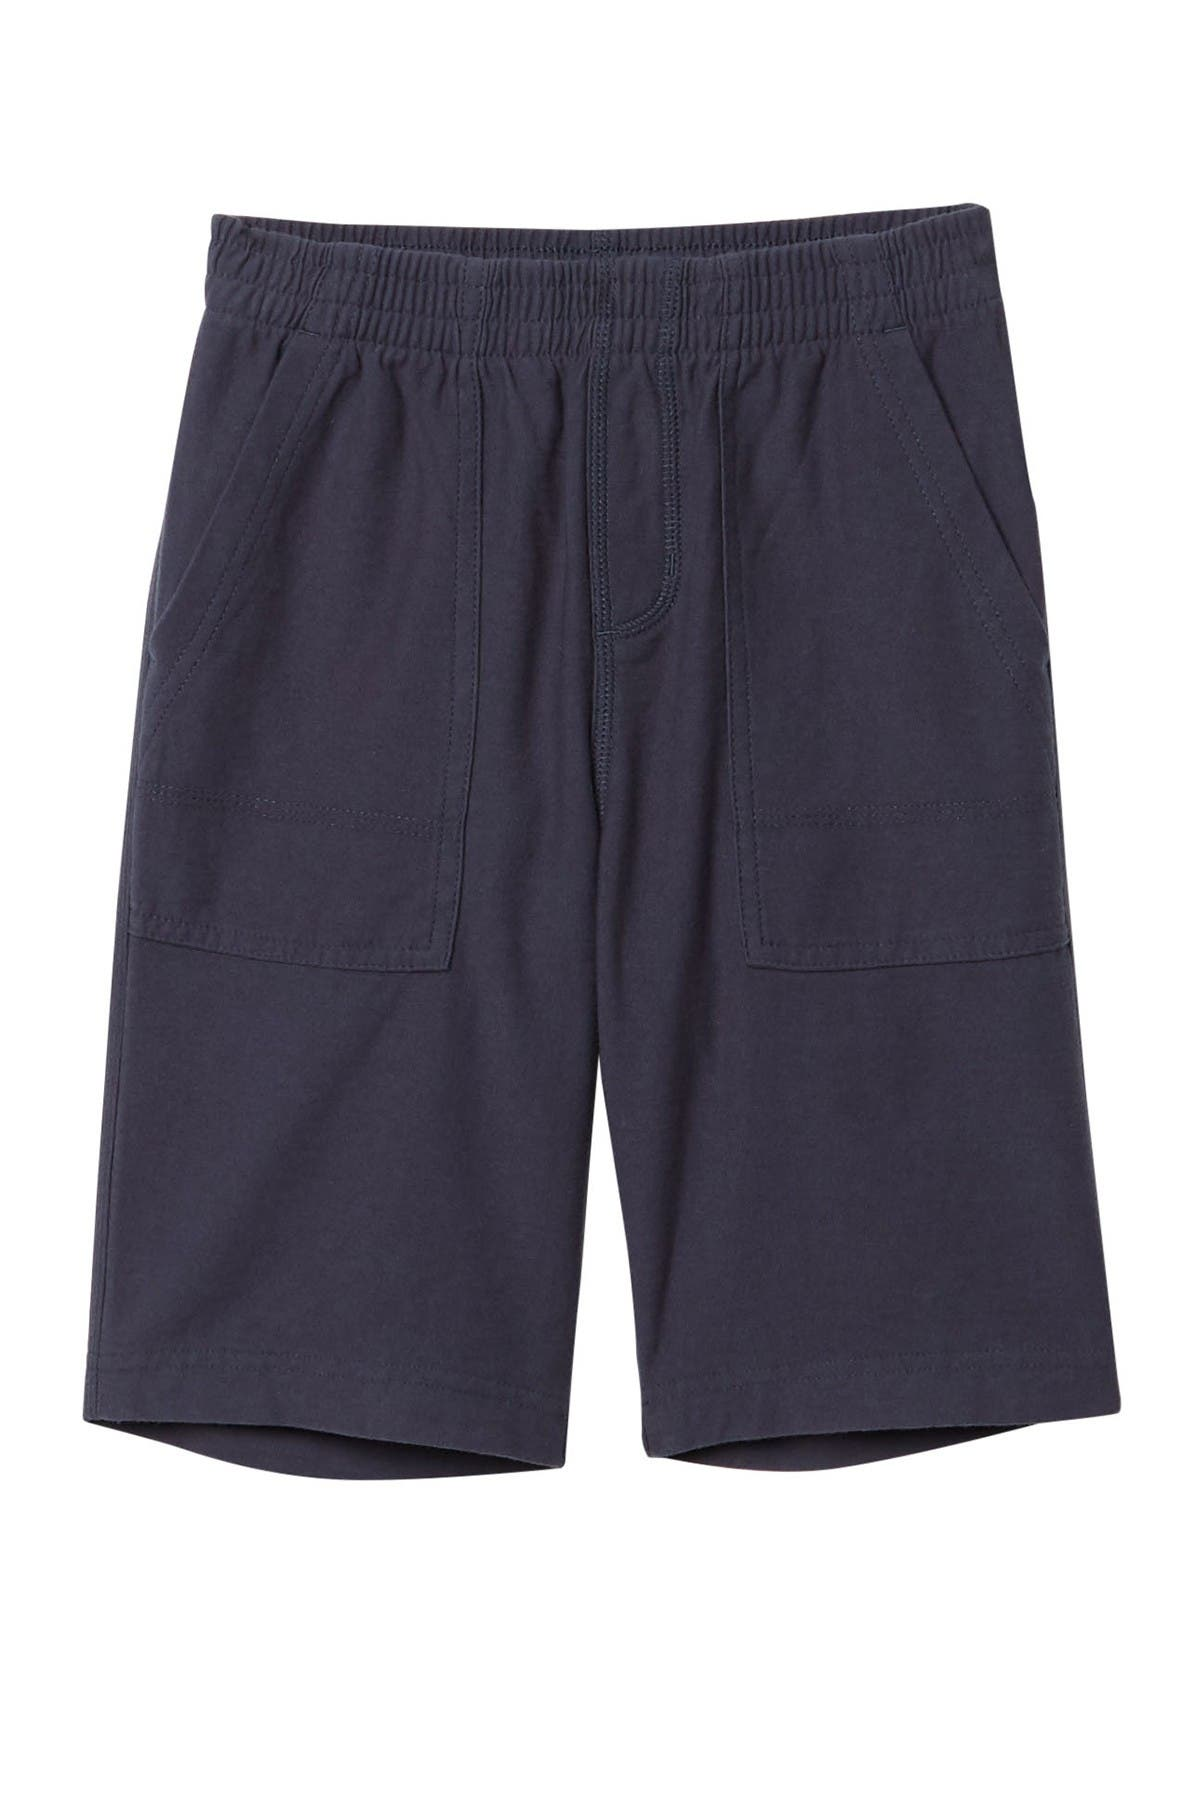 Image of Tea Collection Playwear Shorts